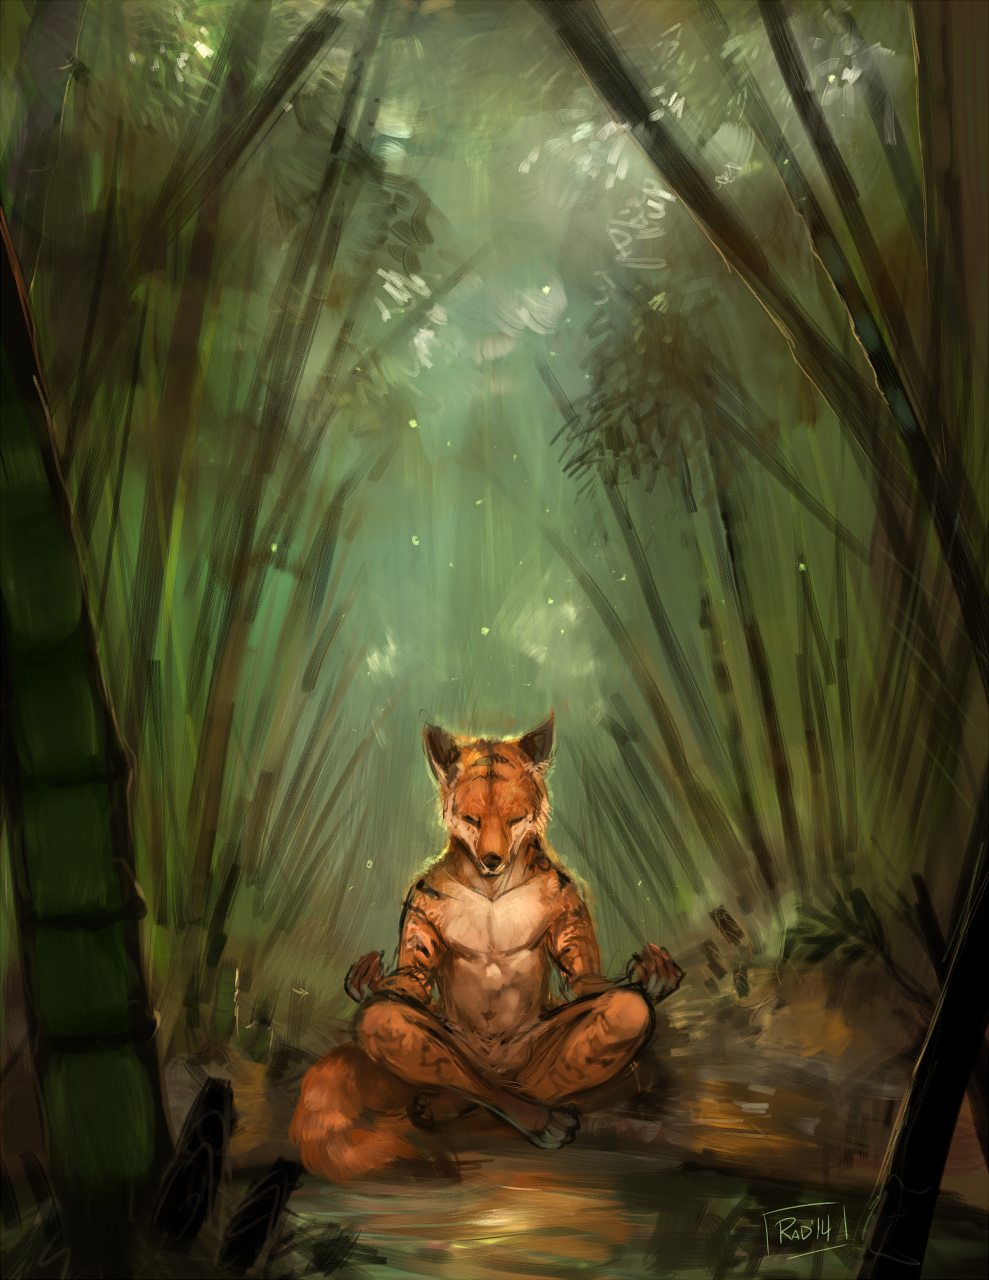 Most recent image: Serenity - Art by Rhyu